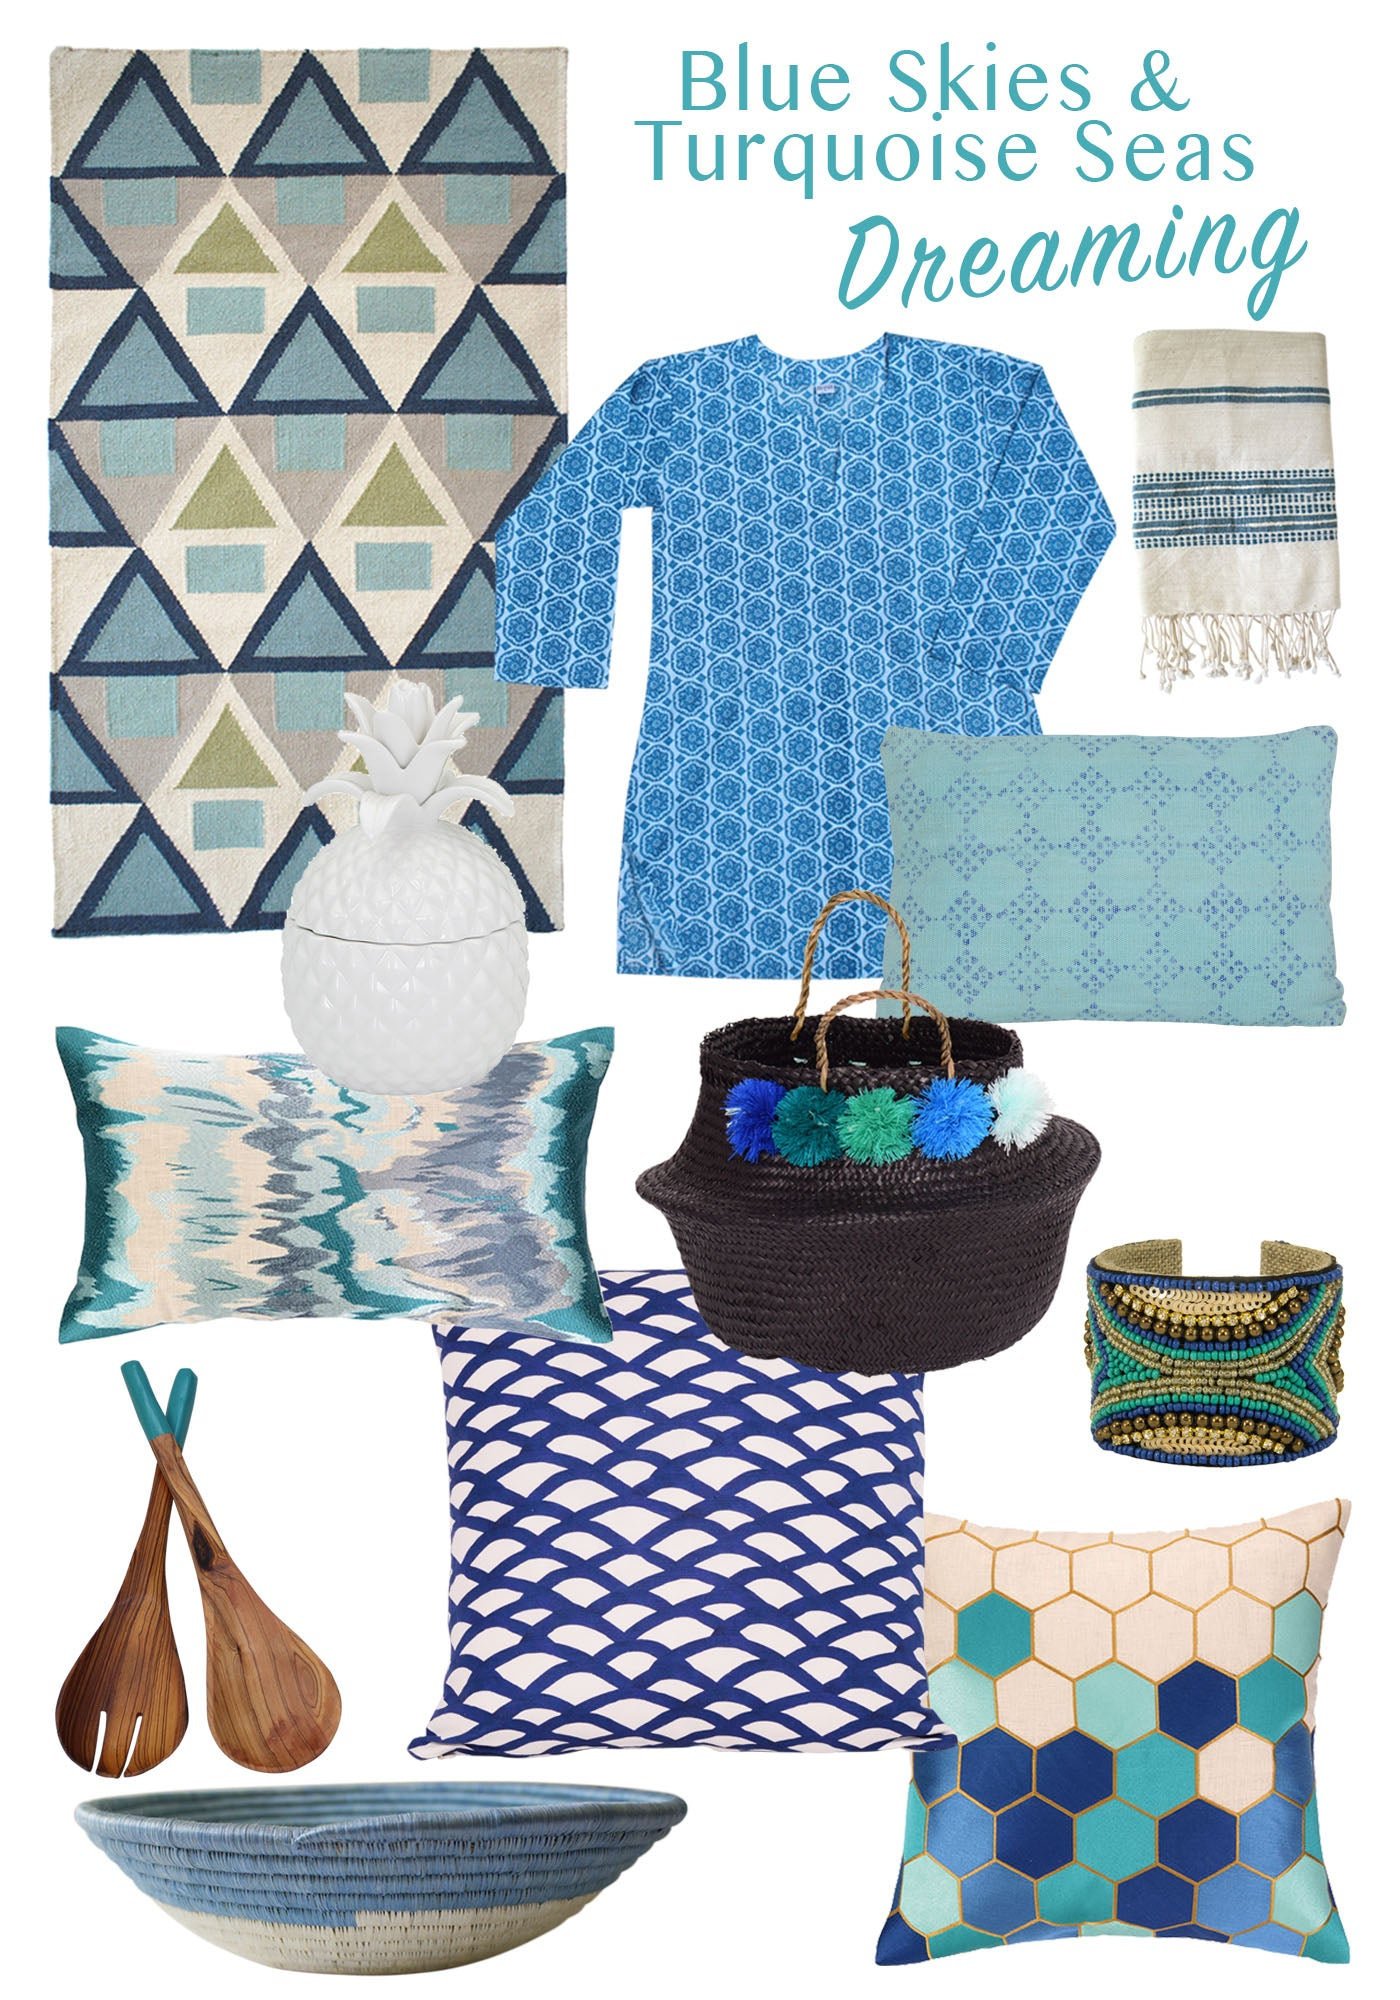 Blue Skies Turquoise Seas Product Roundup from Dear Keaton